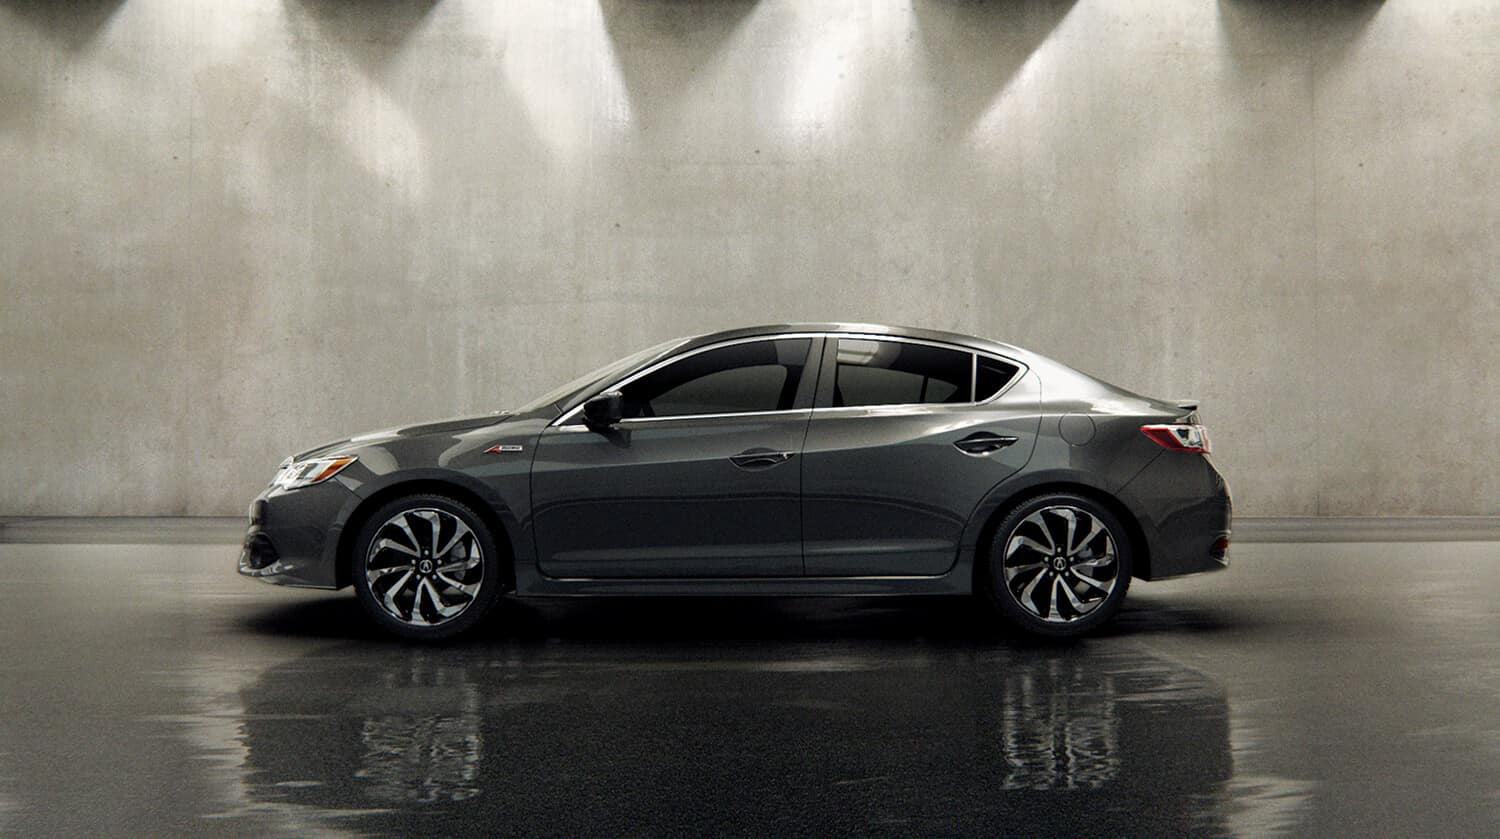 2018 Acura ILX Exterior Side Profile Driver Side